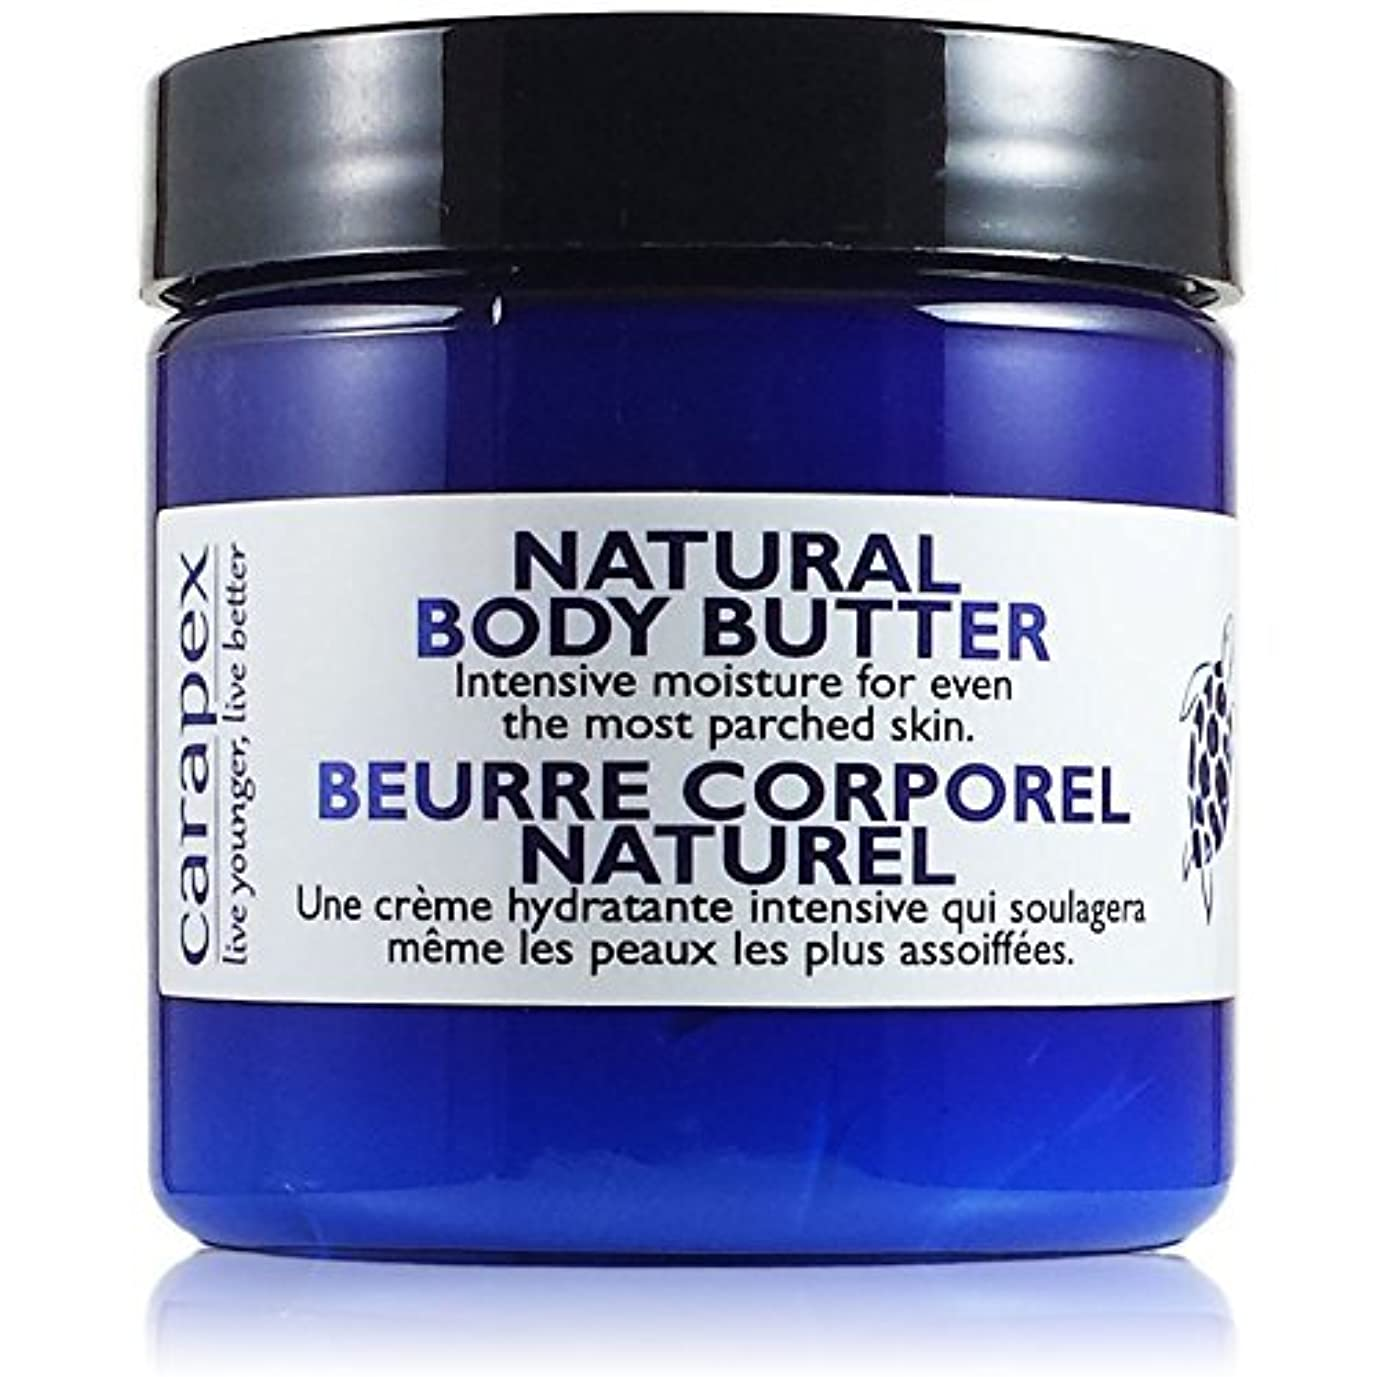 ジュラシックパークジョージエリオット呼ぶCarapex Natural Body Butter Heavy Duty Hand Cream Intensive for Extremely Dry Skin Super Dry Hands Cracks Chapped Hands Unscented Paraben Free 4oz [並行輸入品]